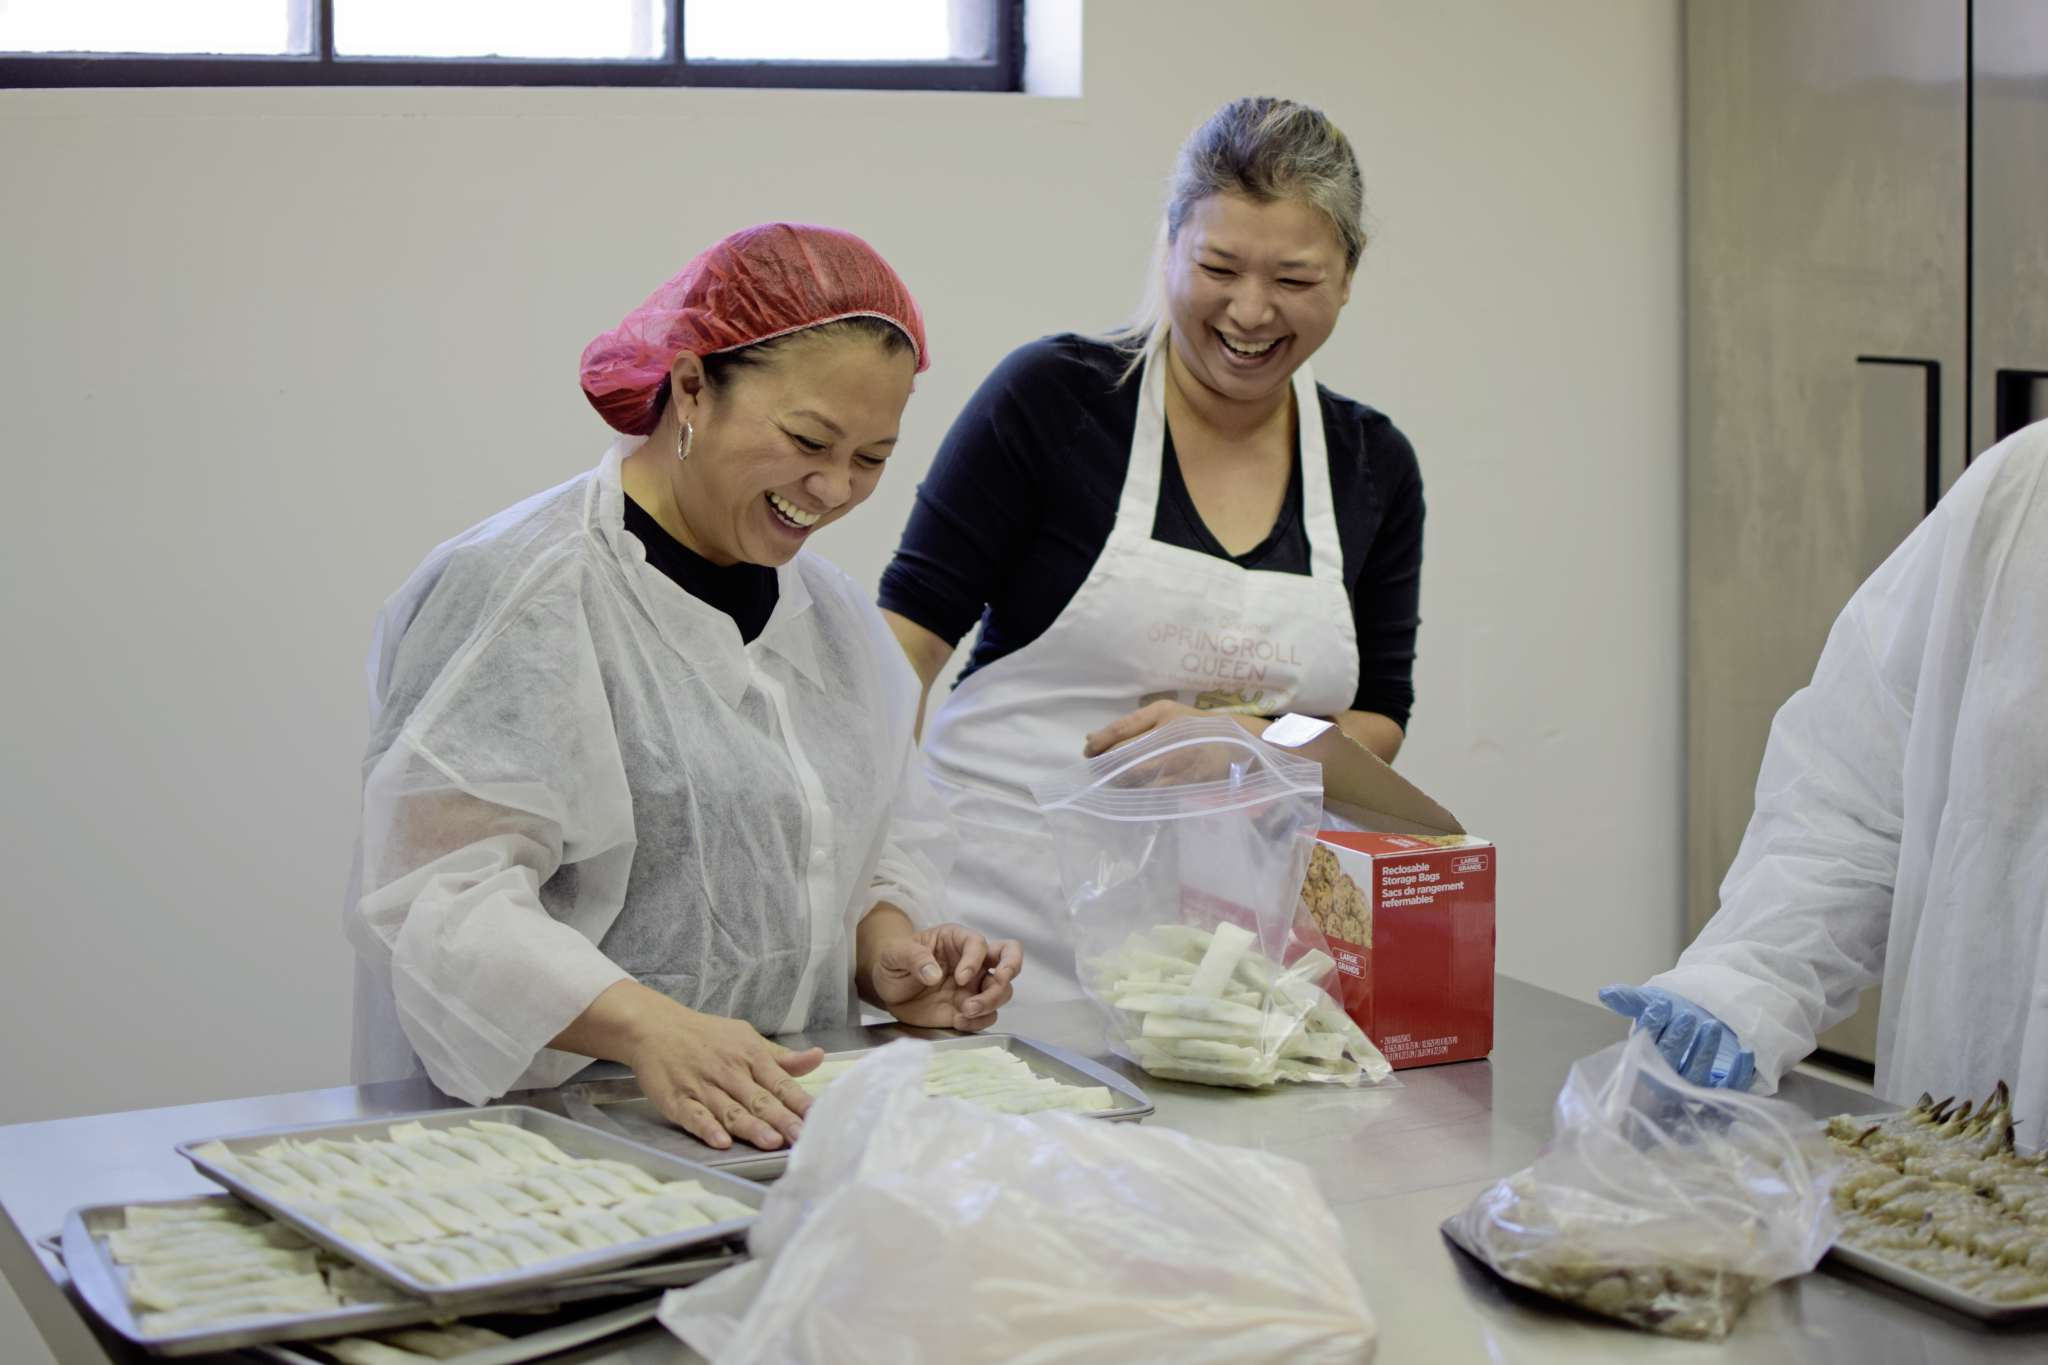 Springroll Queen owner Roweliza Lulu (right) and her friend Heidee Bautista share a laugh while prepping lumpia at the business at 975 Notre Dame Ave.